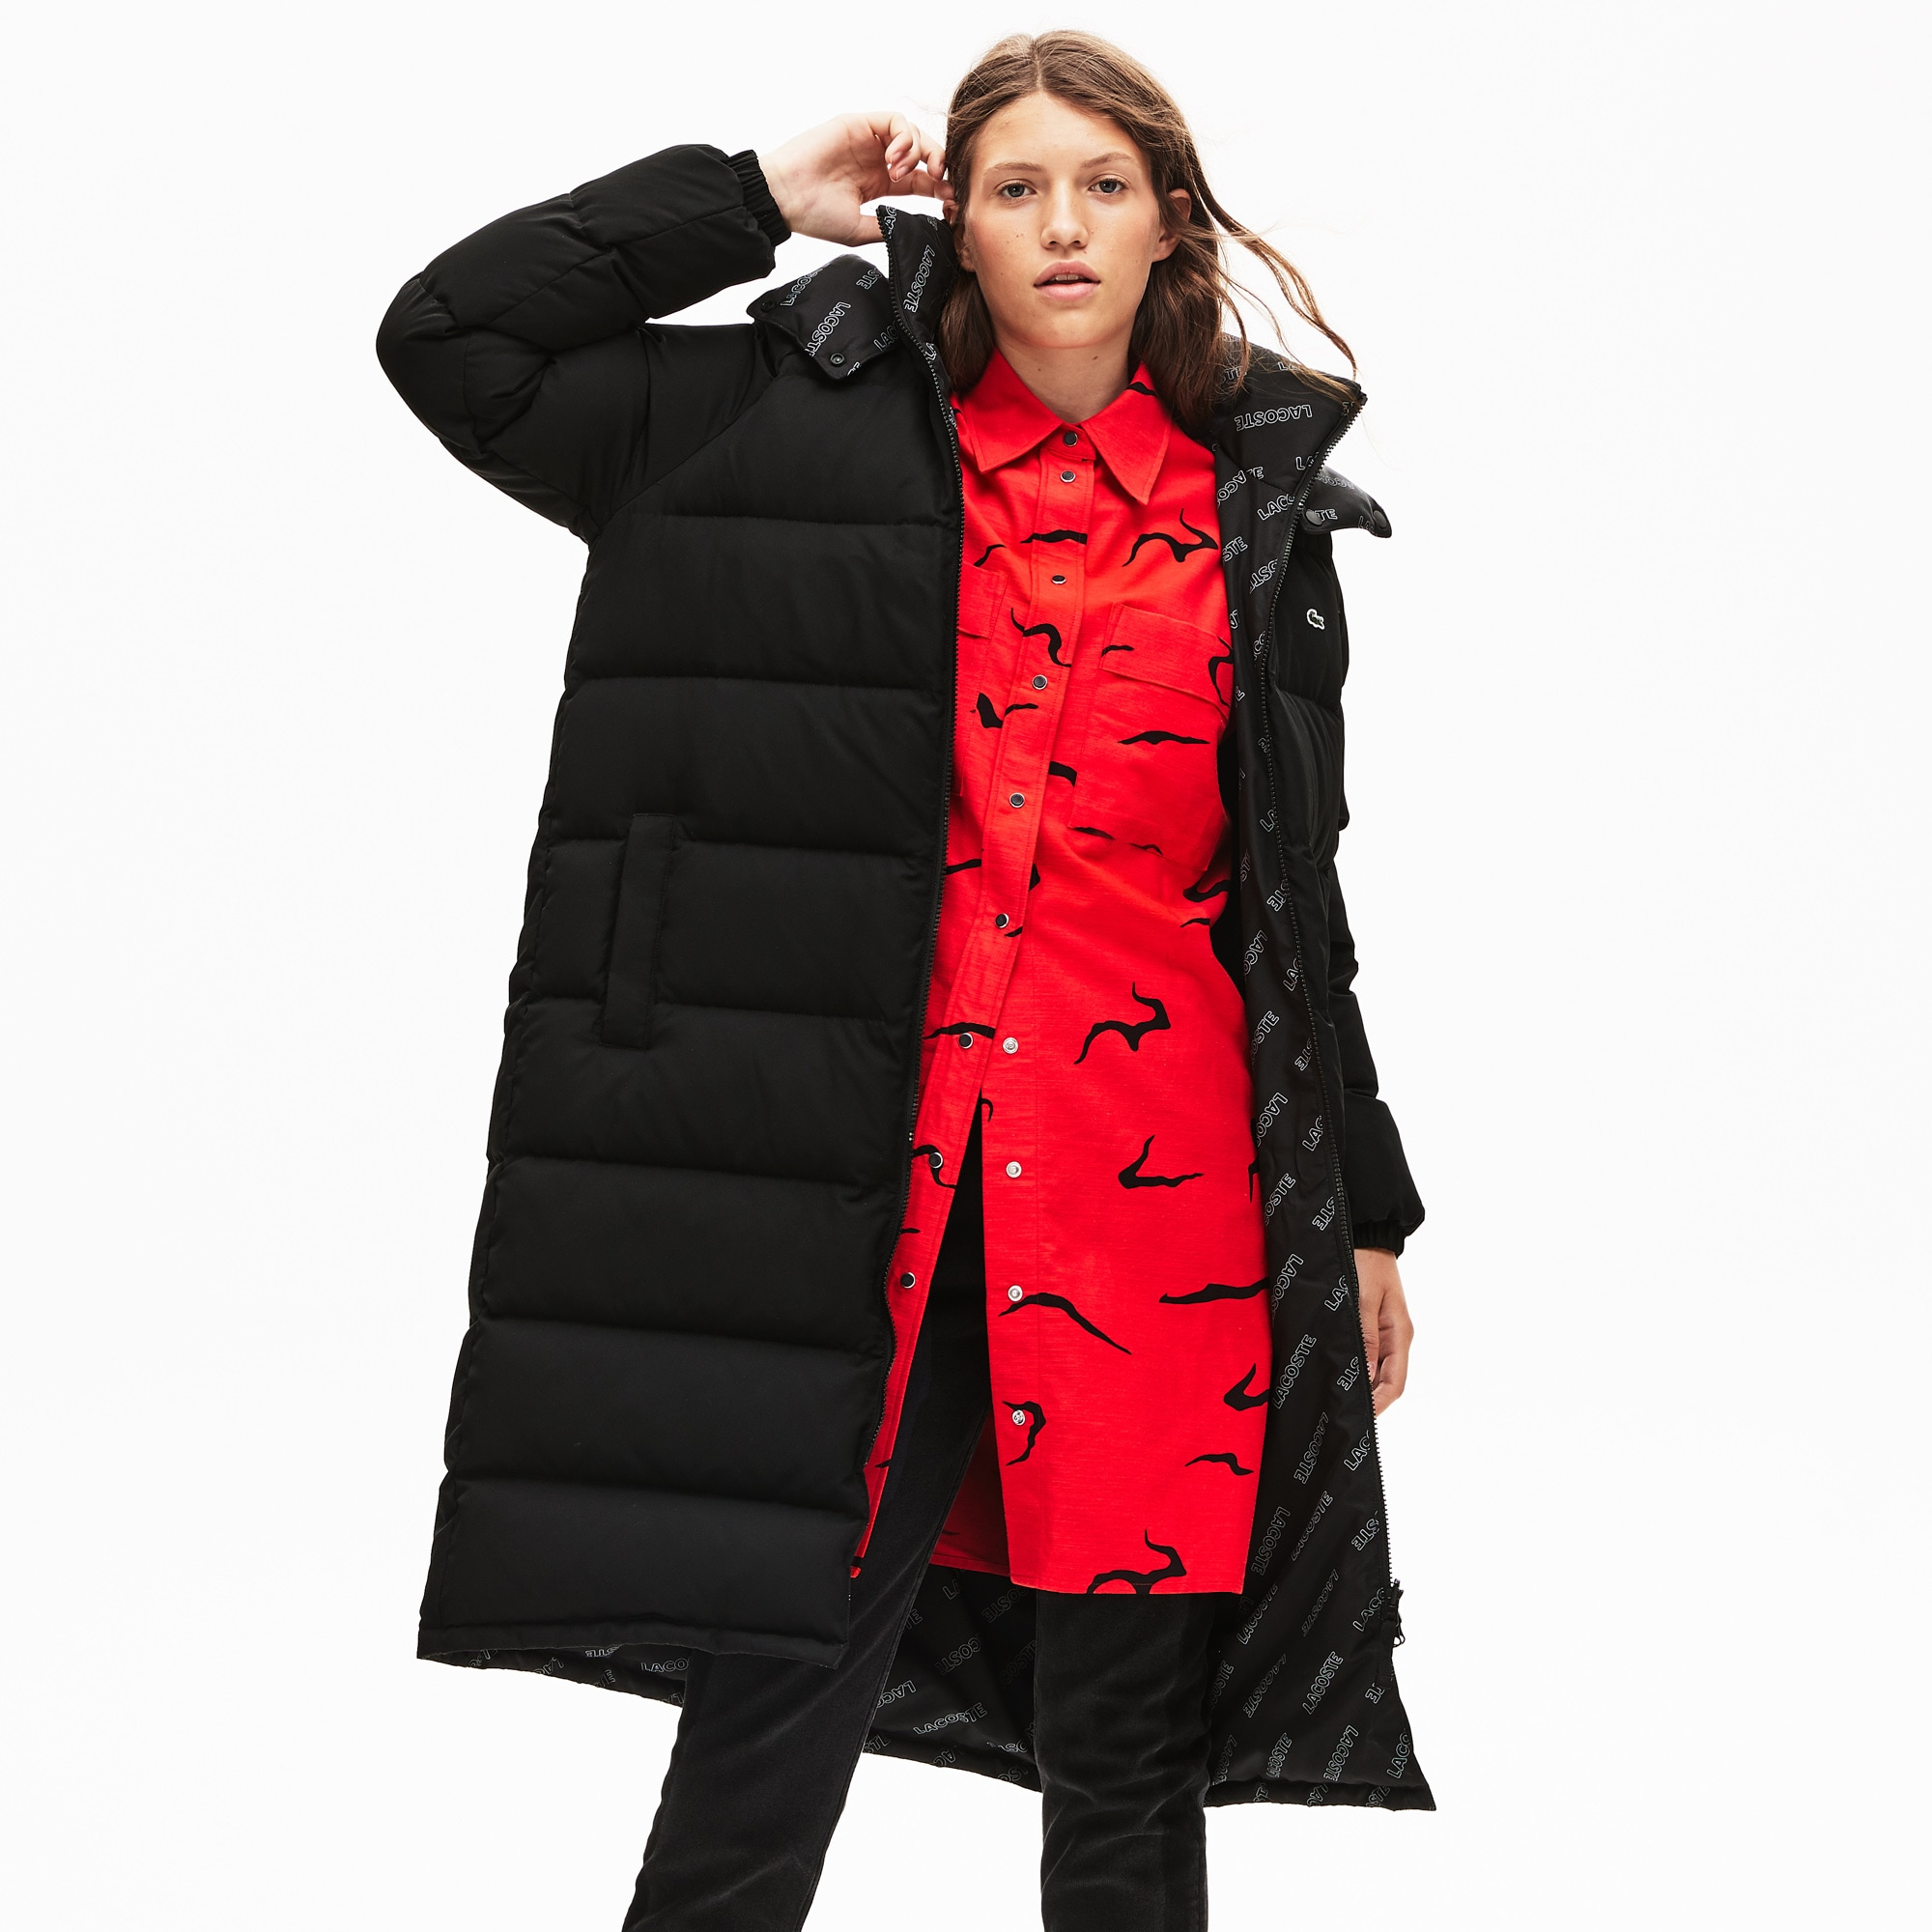 c61980a0 Jackets and Coats | Women's Outerwear | LACOSTE